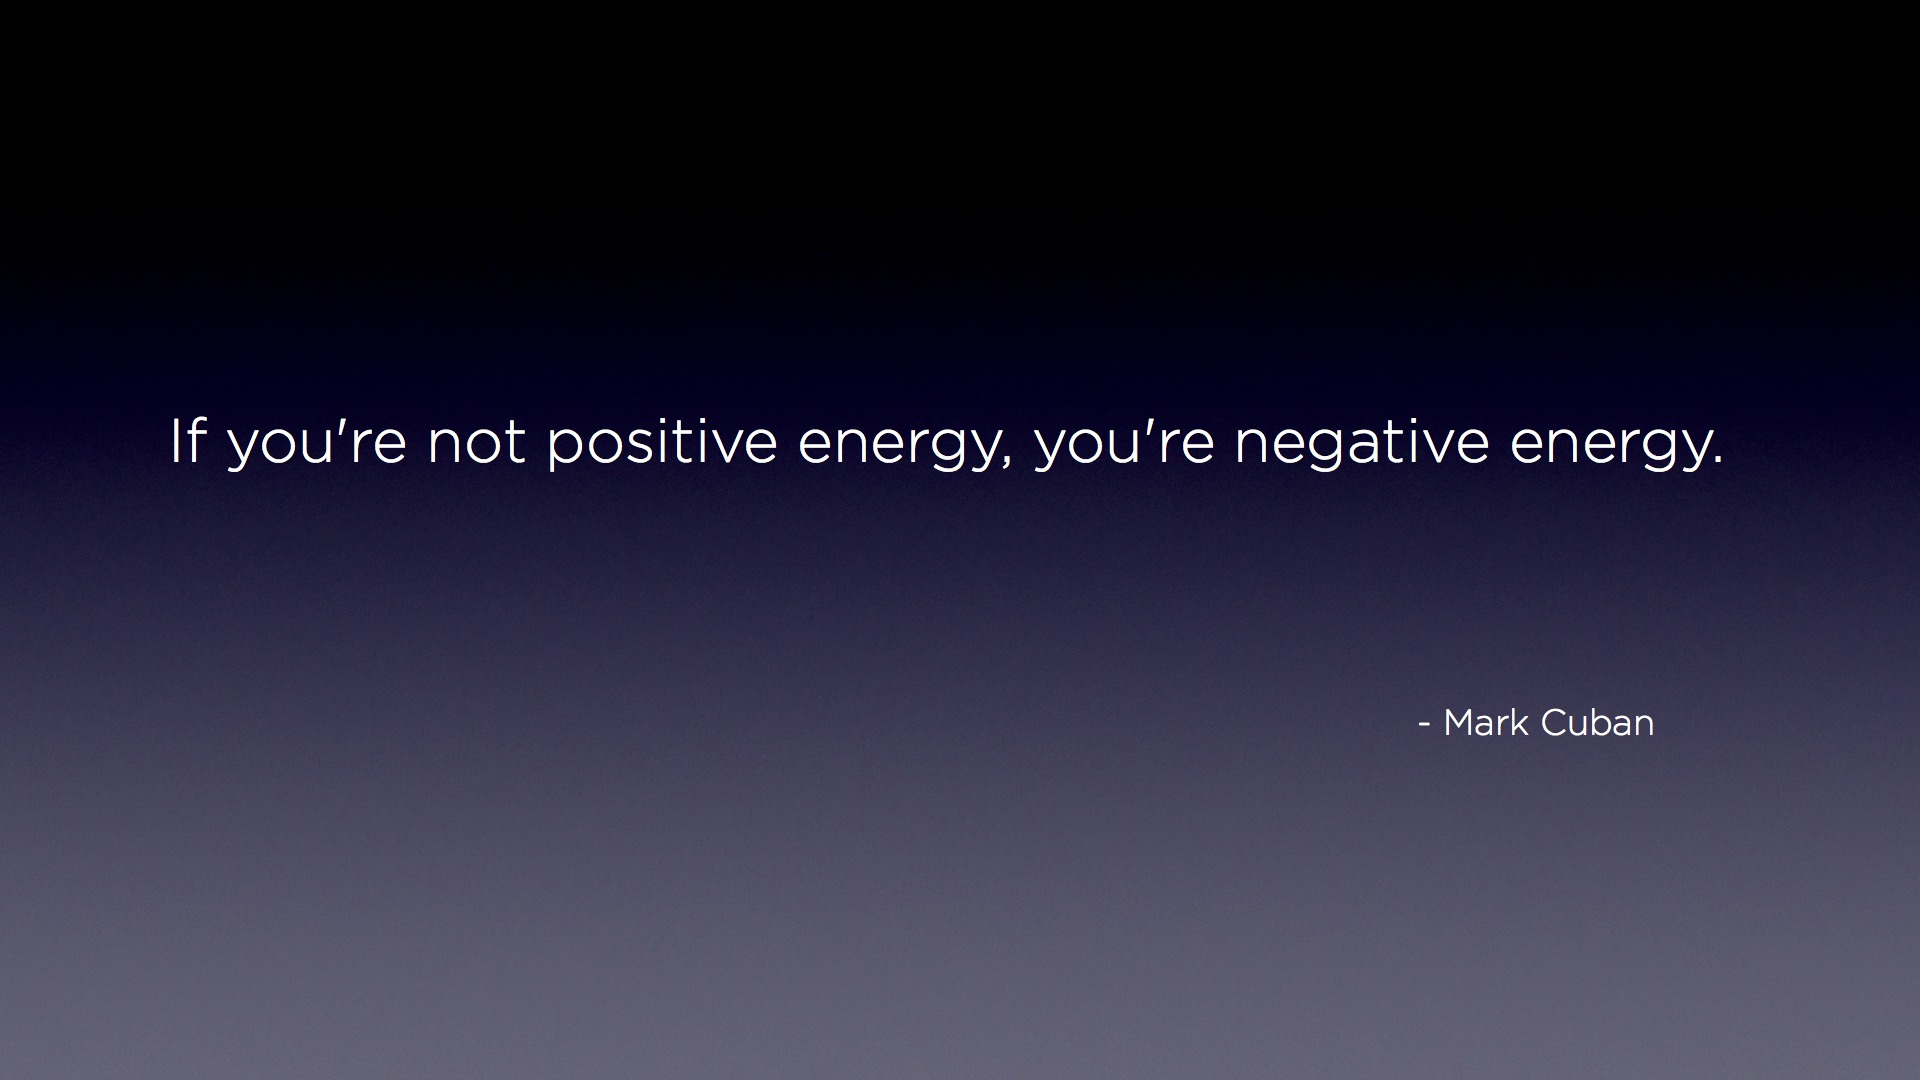 if you're not positive energy, you're negative enery by Mark Cuban